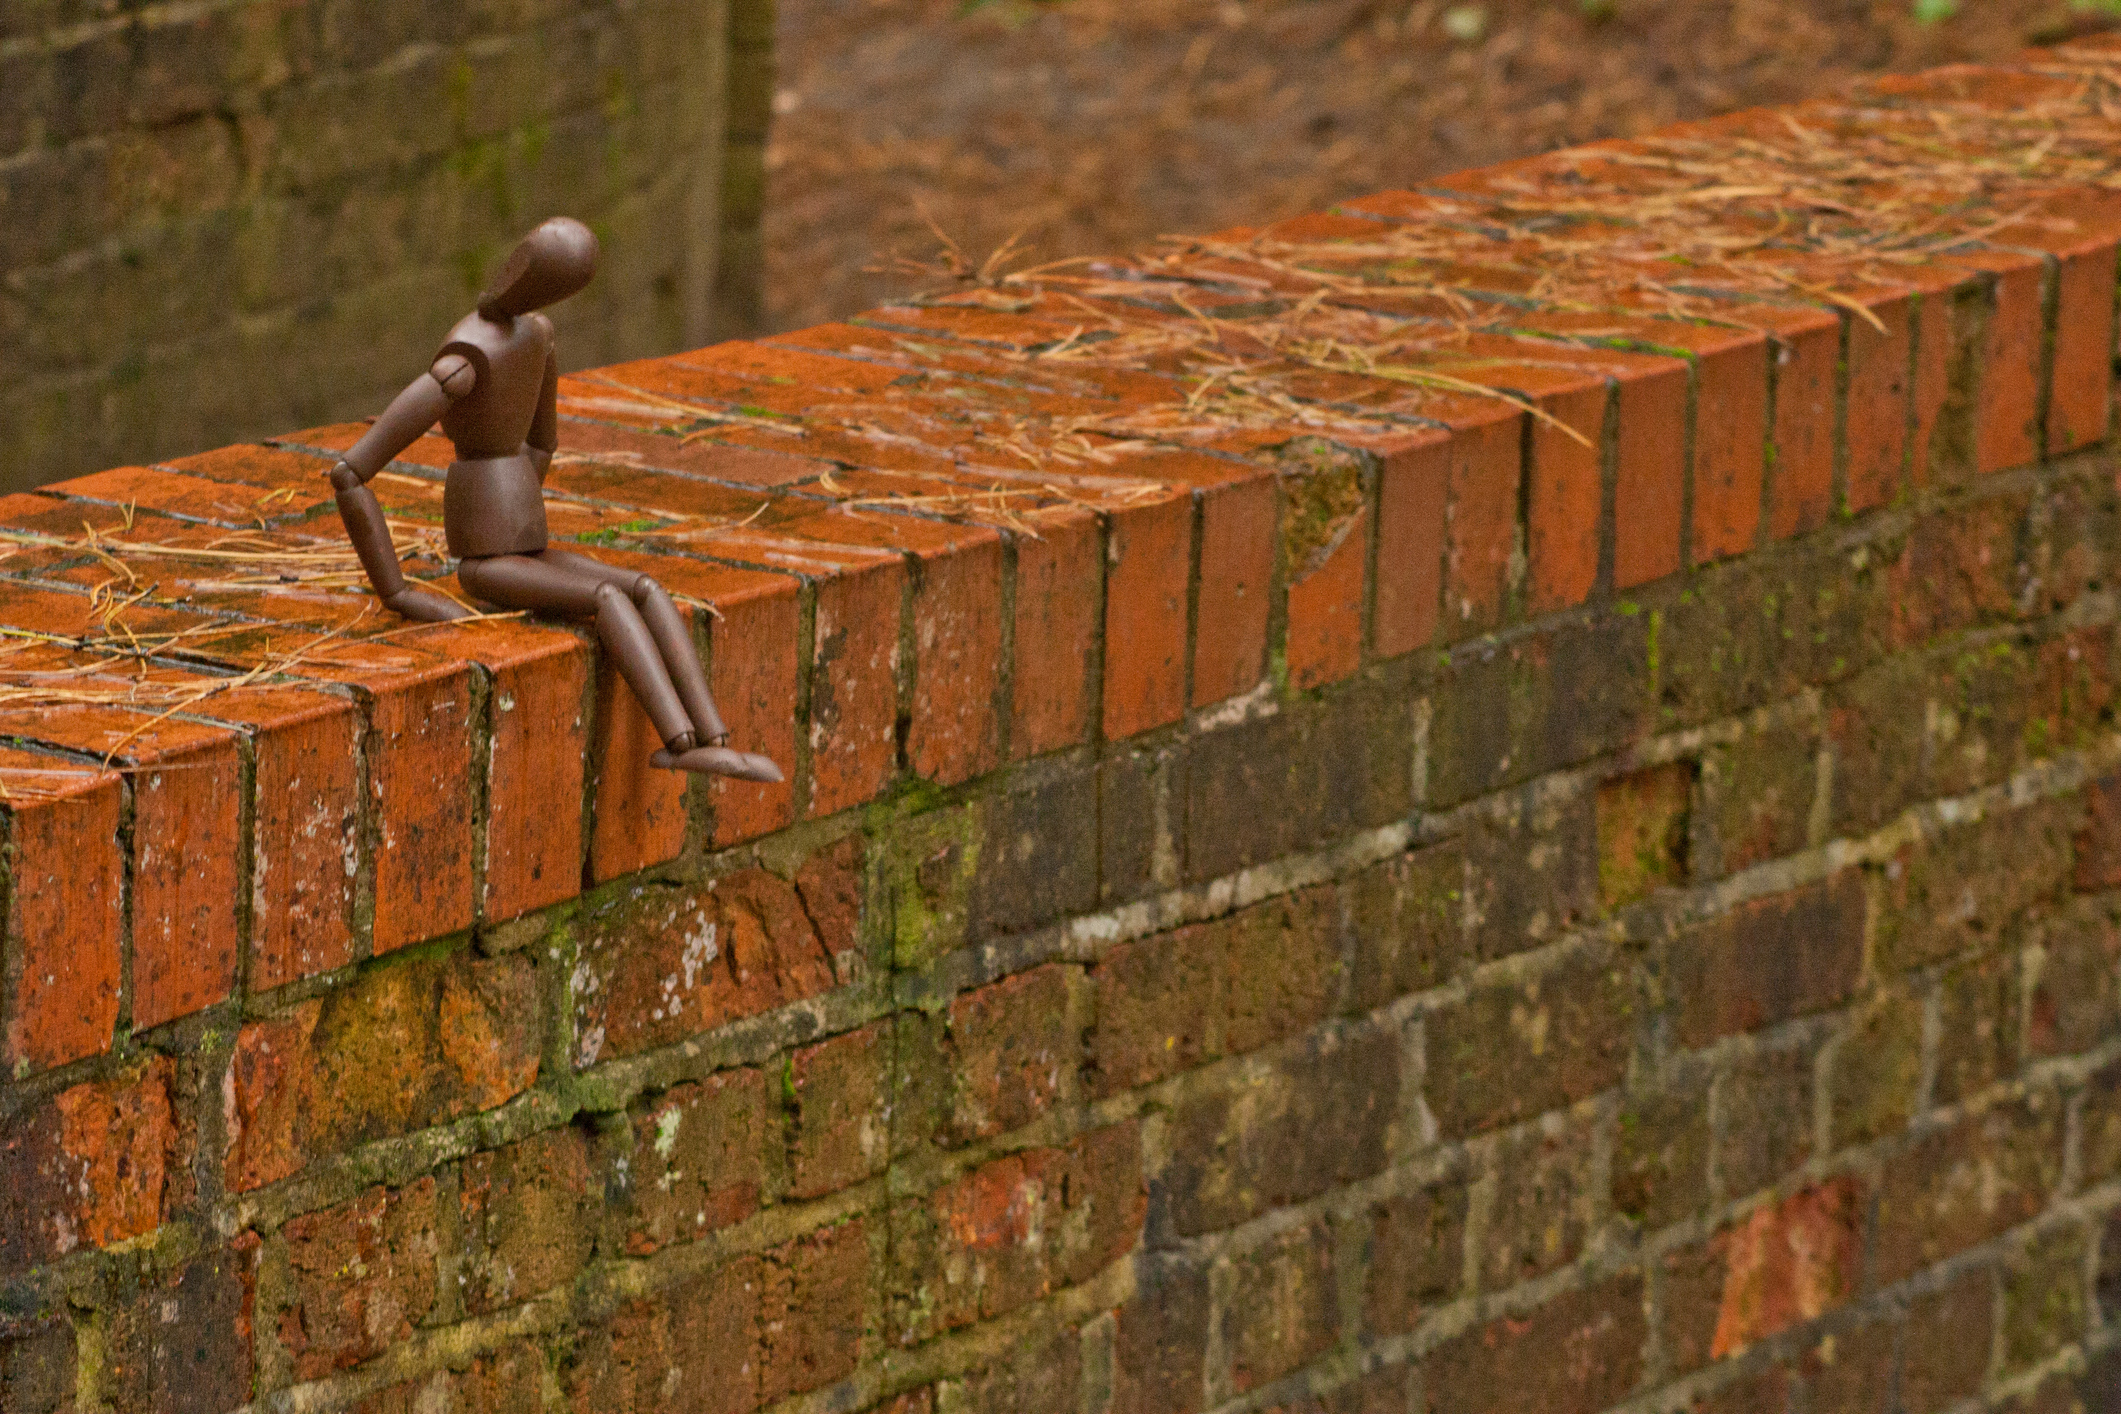 A mannequin person stands precariously on the edge of a bridge edge with bad thoughts. The possibility of committing suicide.